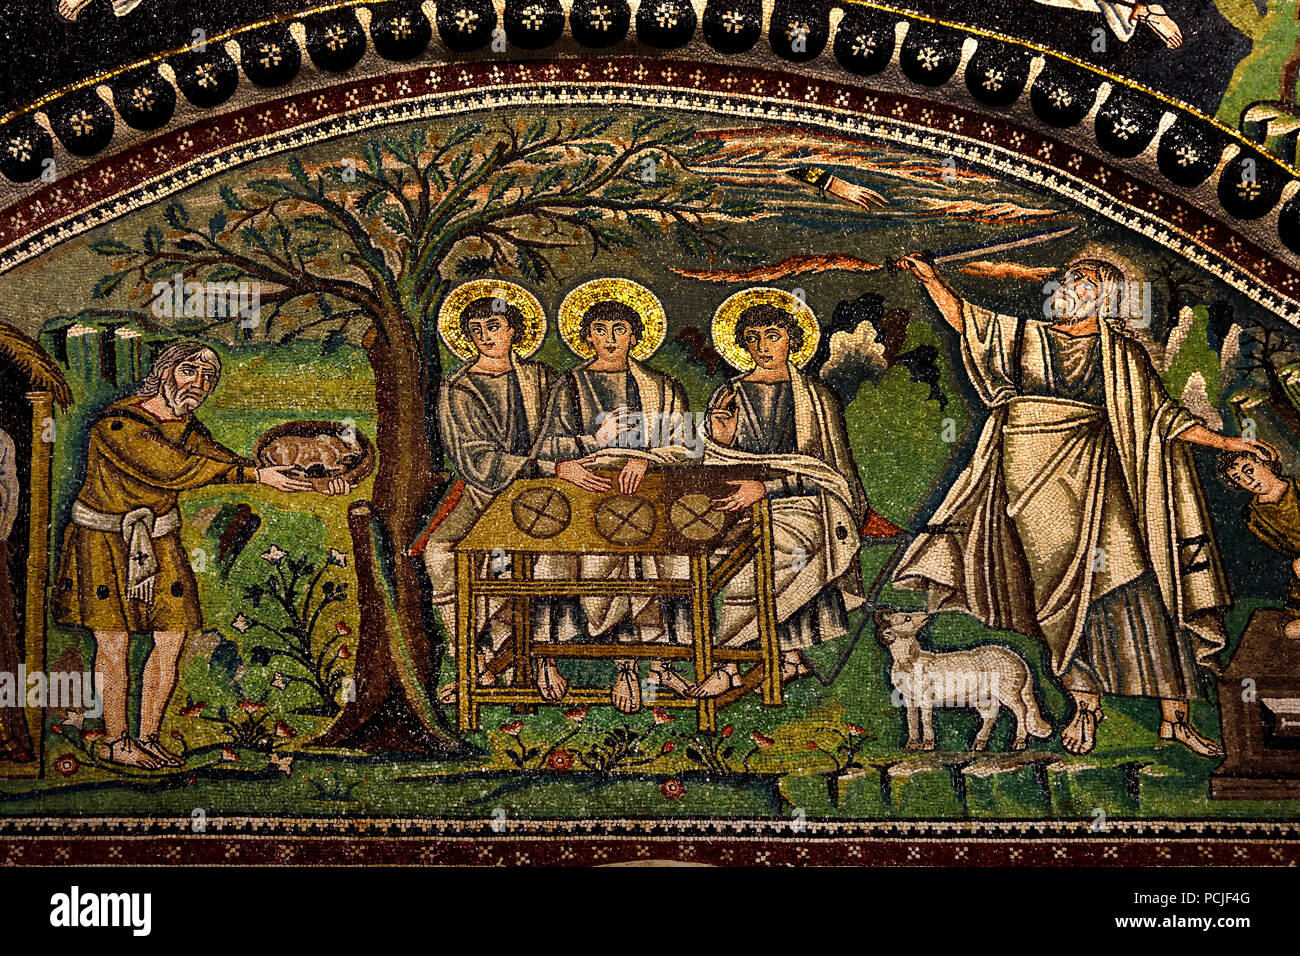 Sacrifice of Isaac mosaic in the Basilica of San Vitale 547 AD 6th Century in Ravenna - Mosaics ( late Roman and Byzantine architecture,) Emilia-Romagna - Northern Italy. ( UNESCO World Heritage site ) God asks Abraham to sacrifice his son - Stock Image